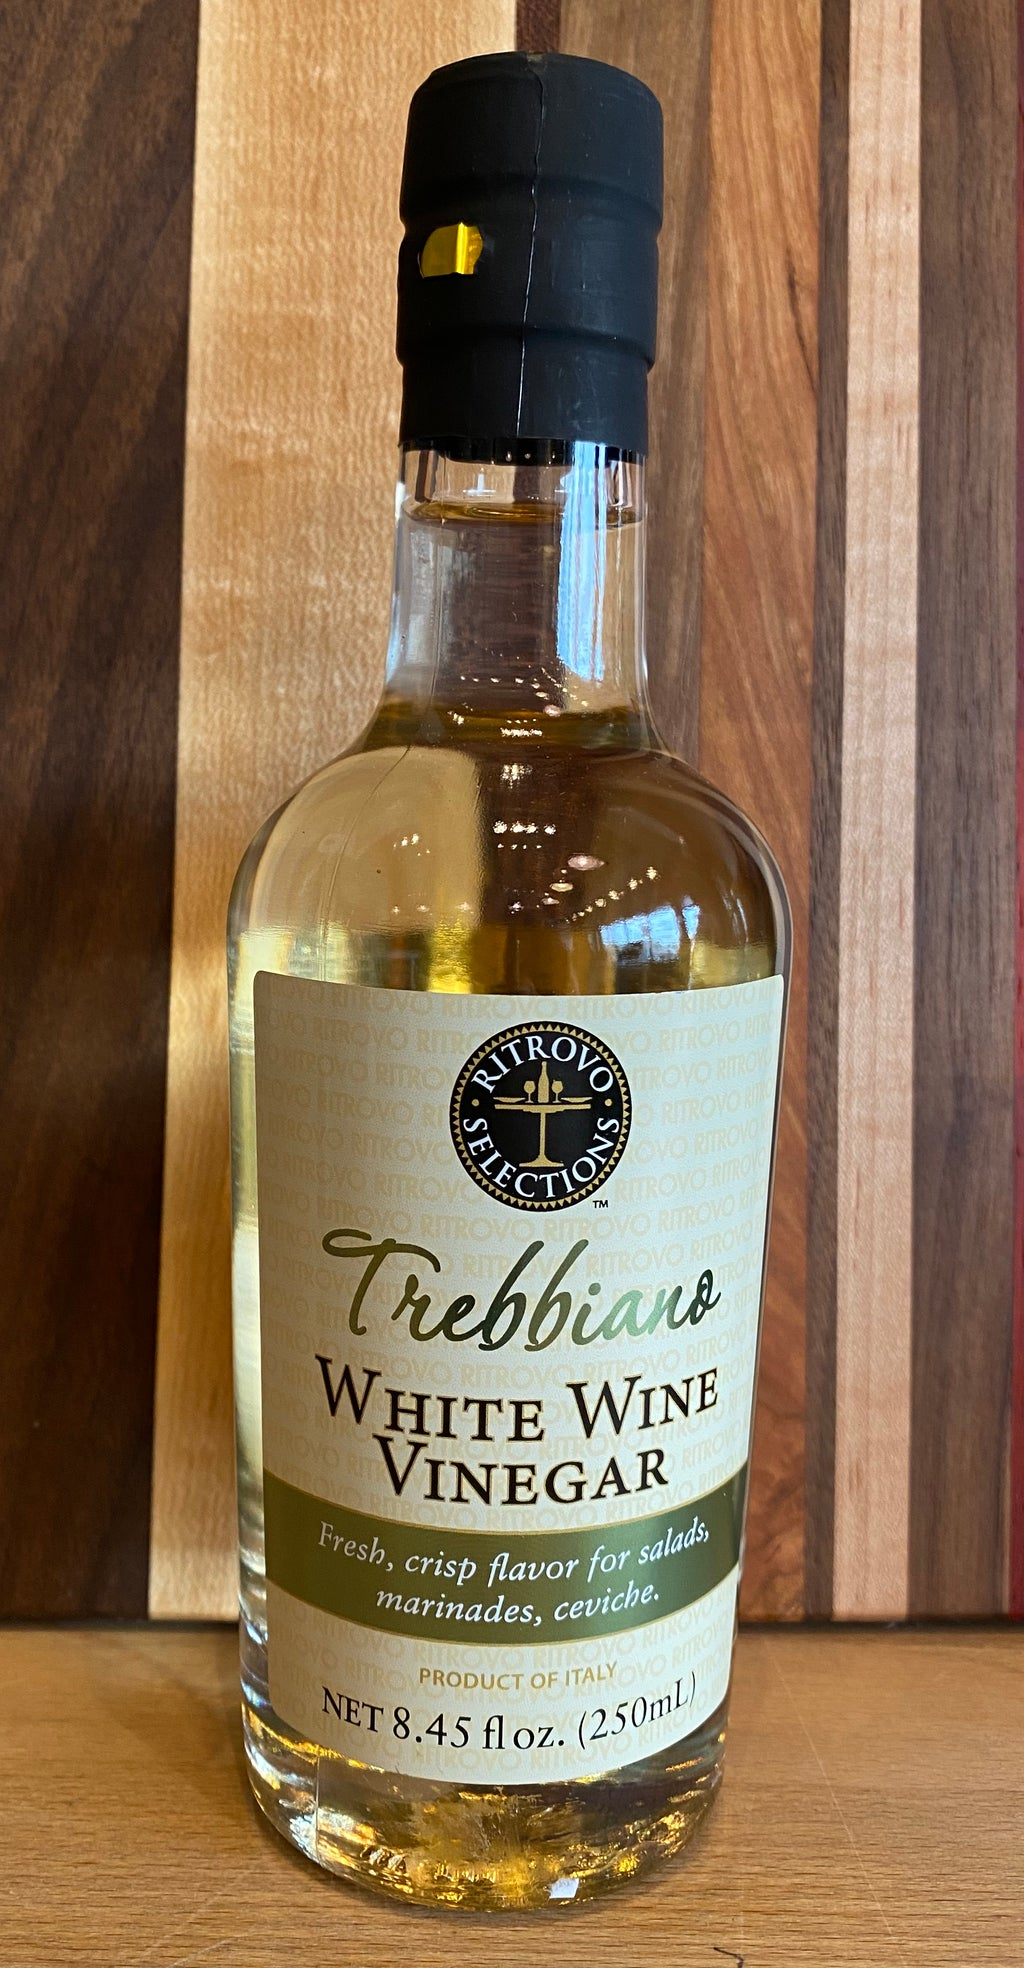 Trebbiano White Wine Vinegar